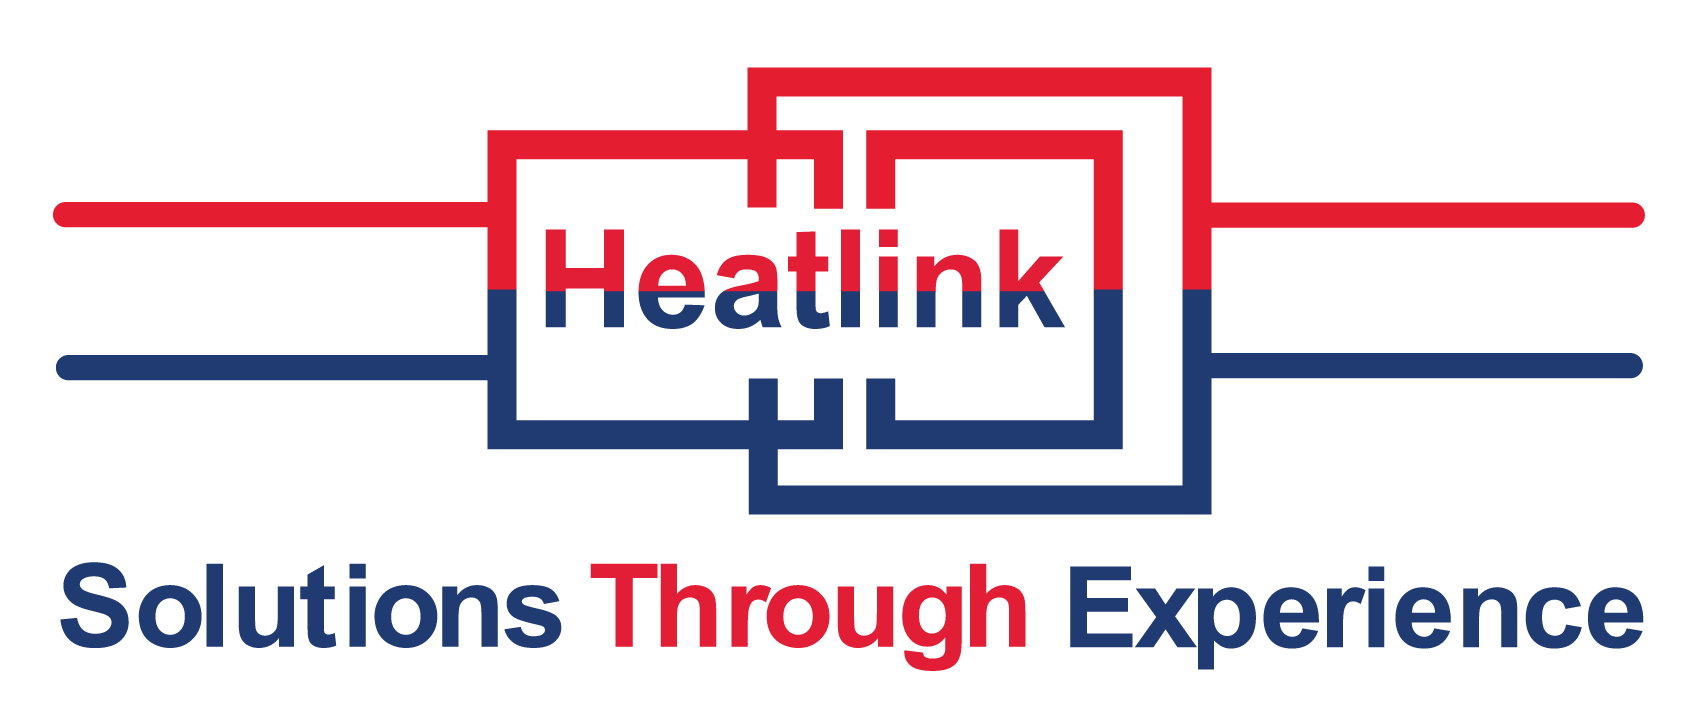 HEATLINK LOGO - Richmond Park - Sheffield